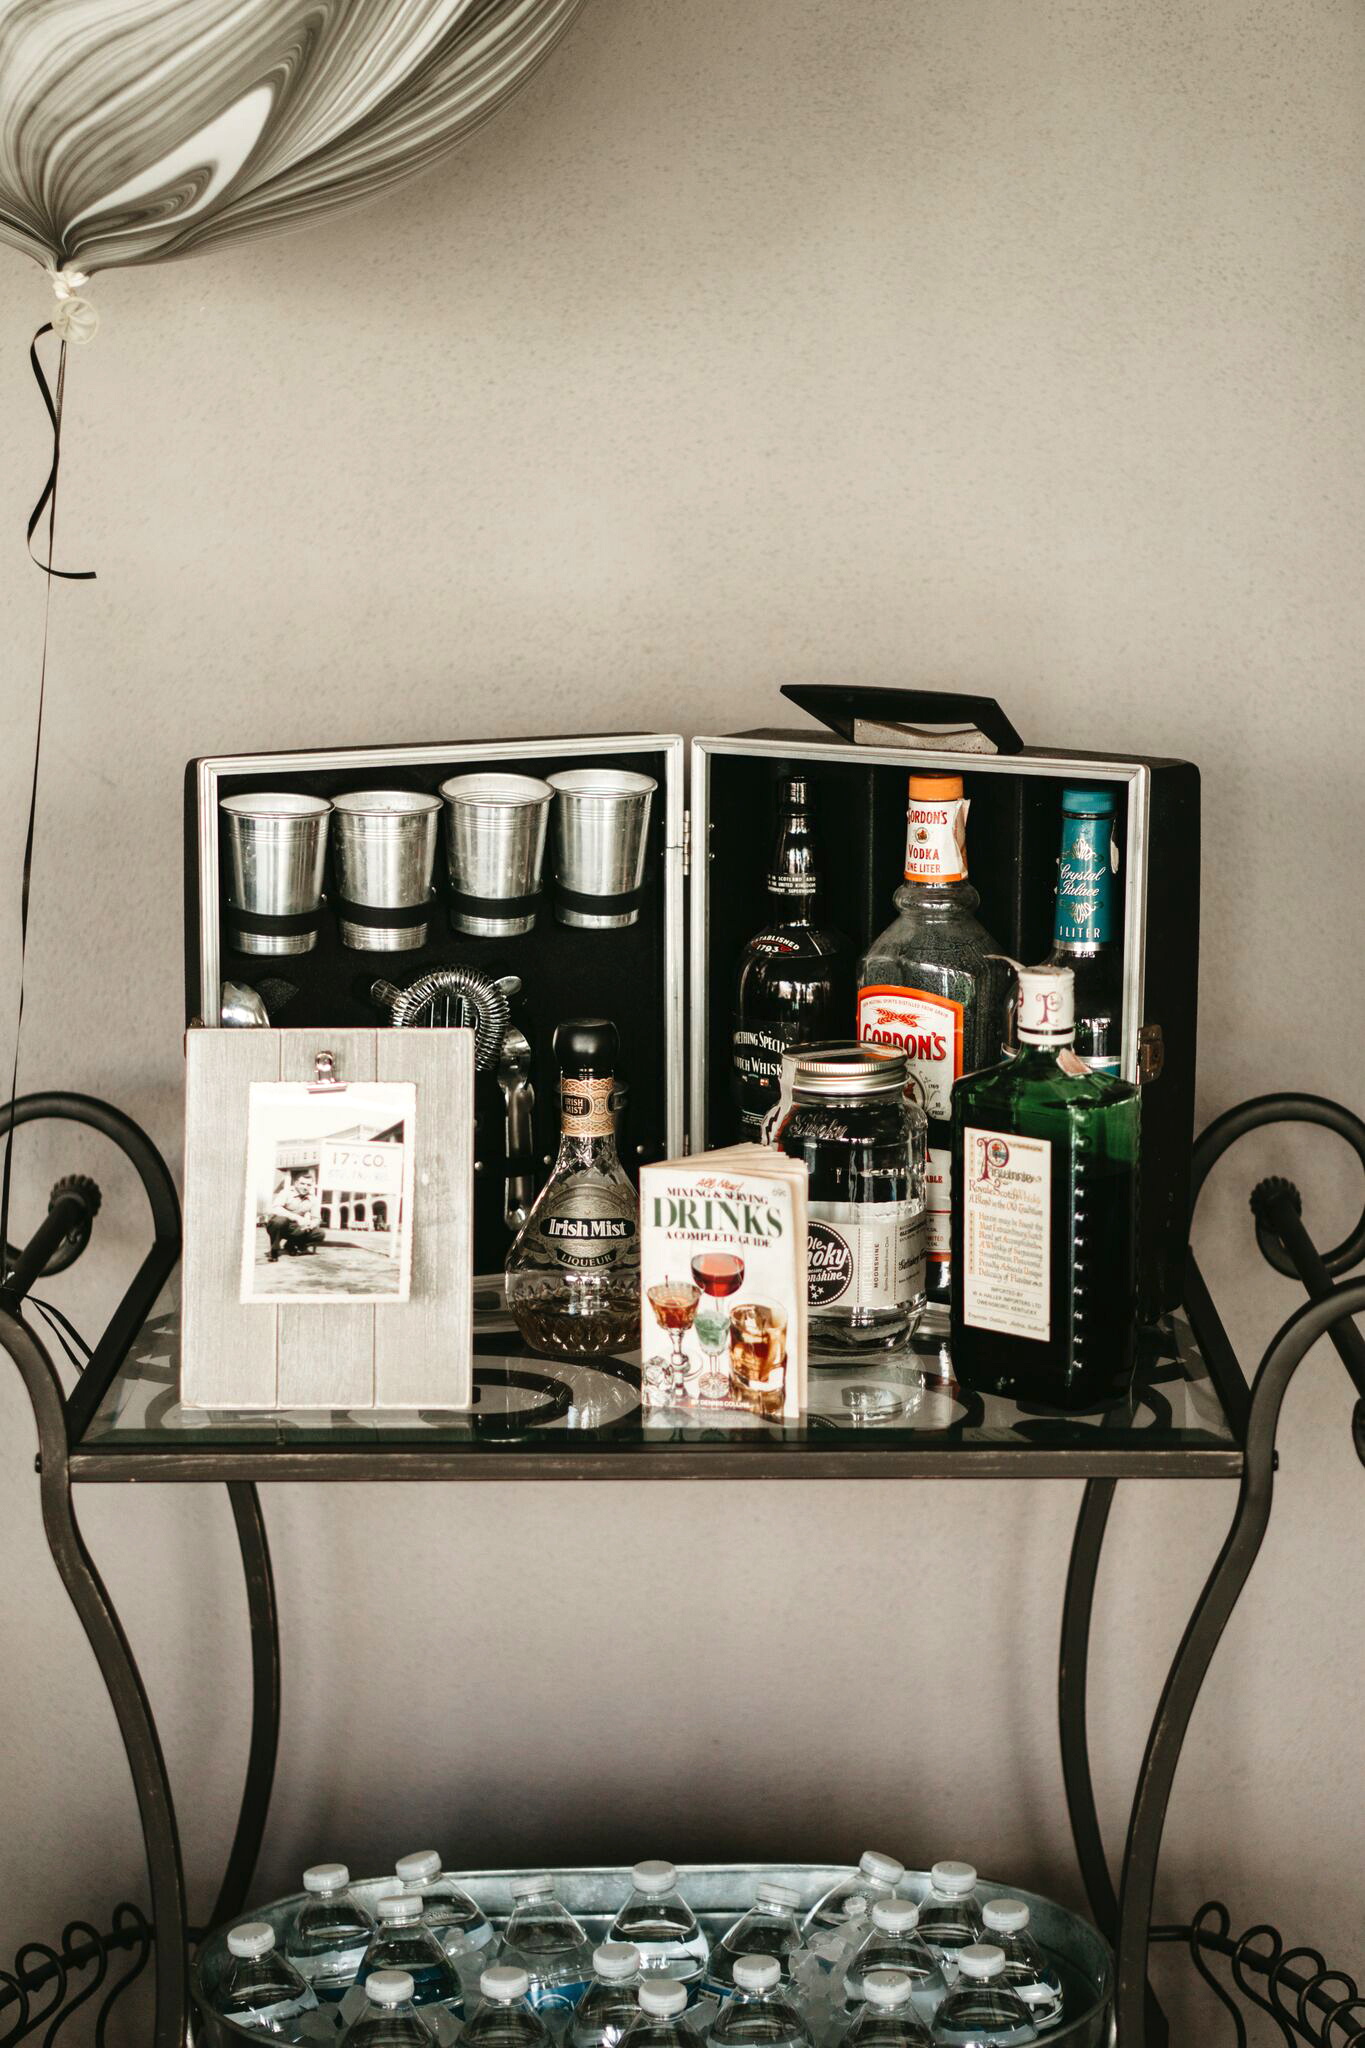 grandfather's 90th birthday alcoholic drinks station